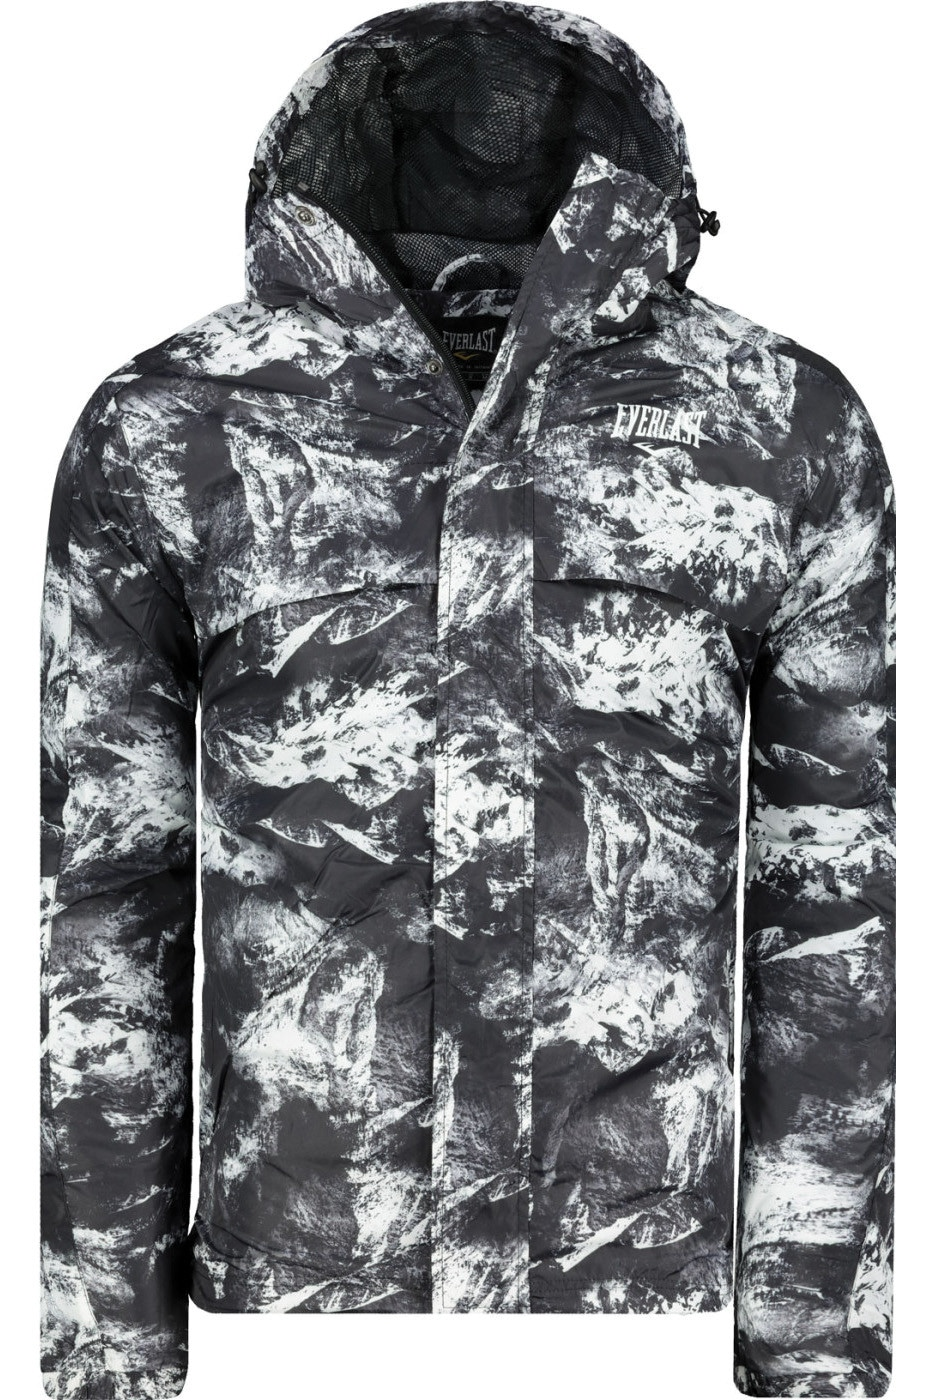 Everlast Rain Jacket Mens